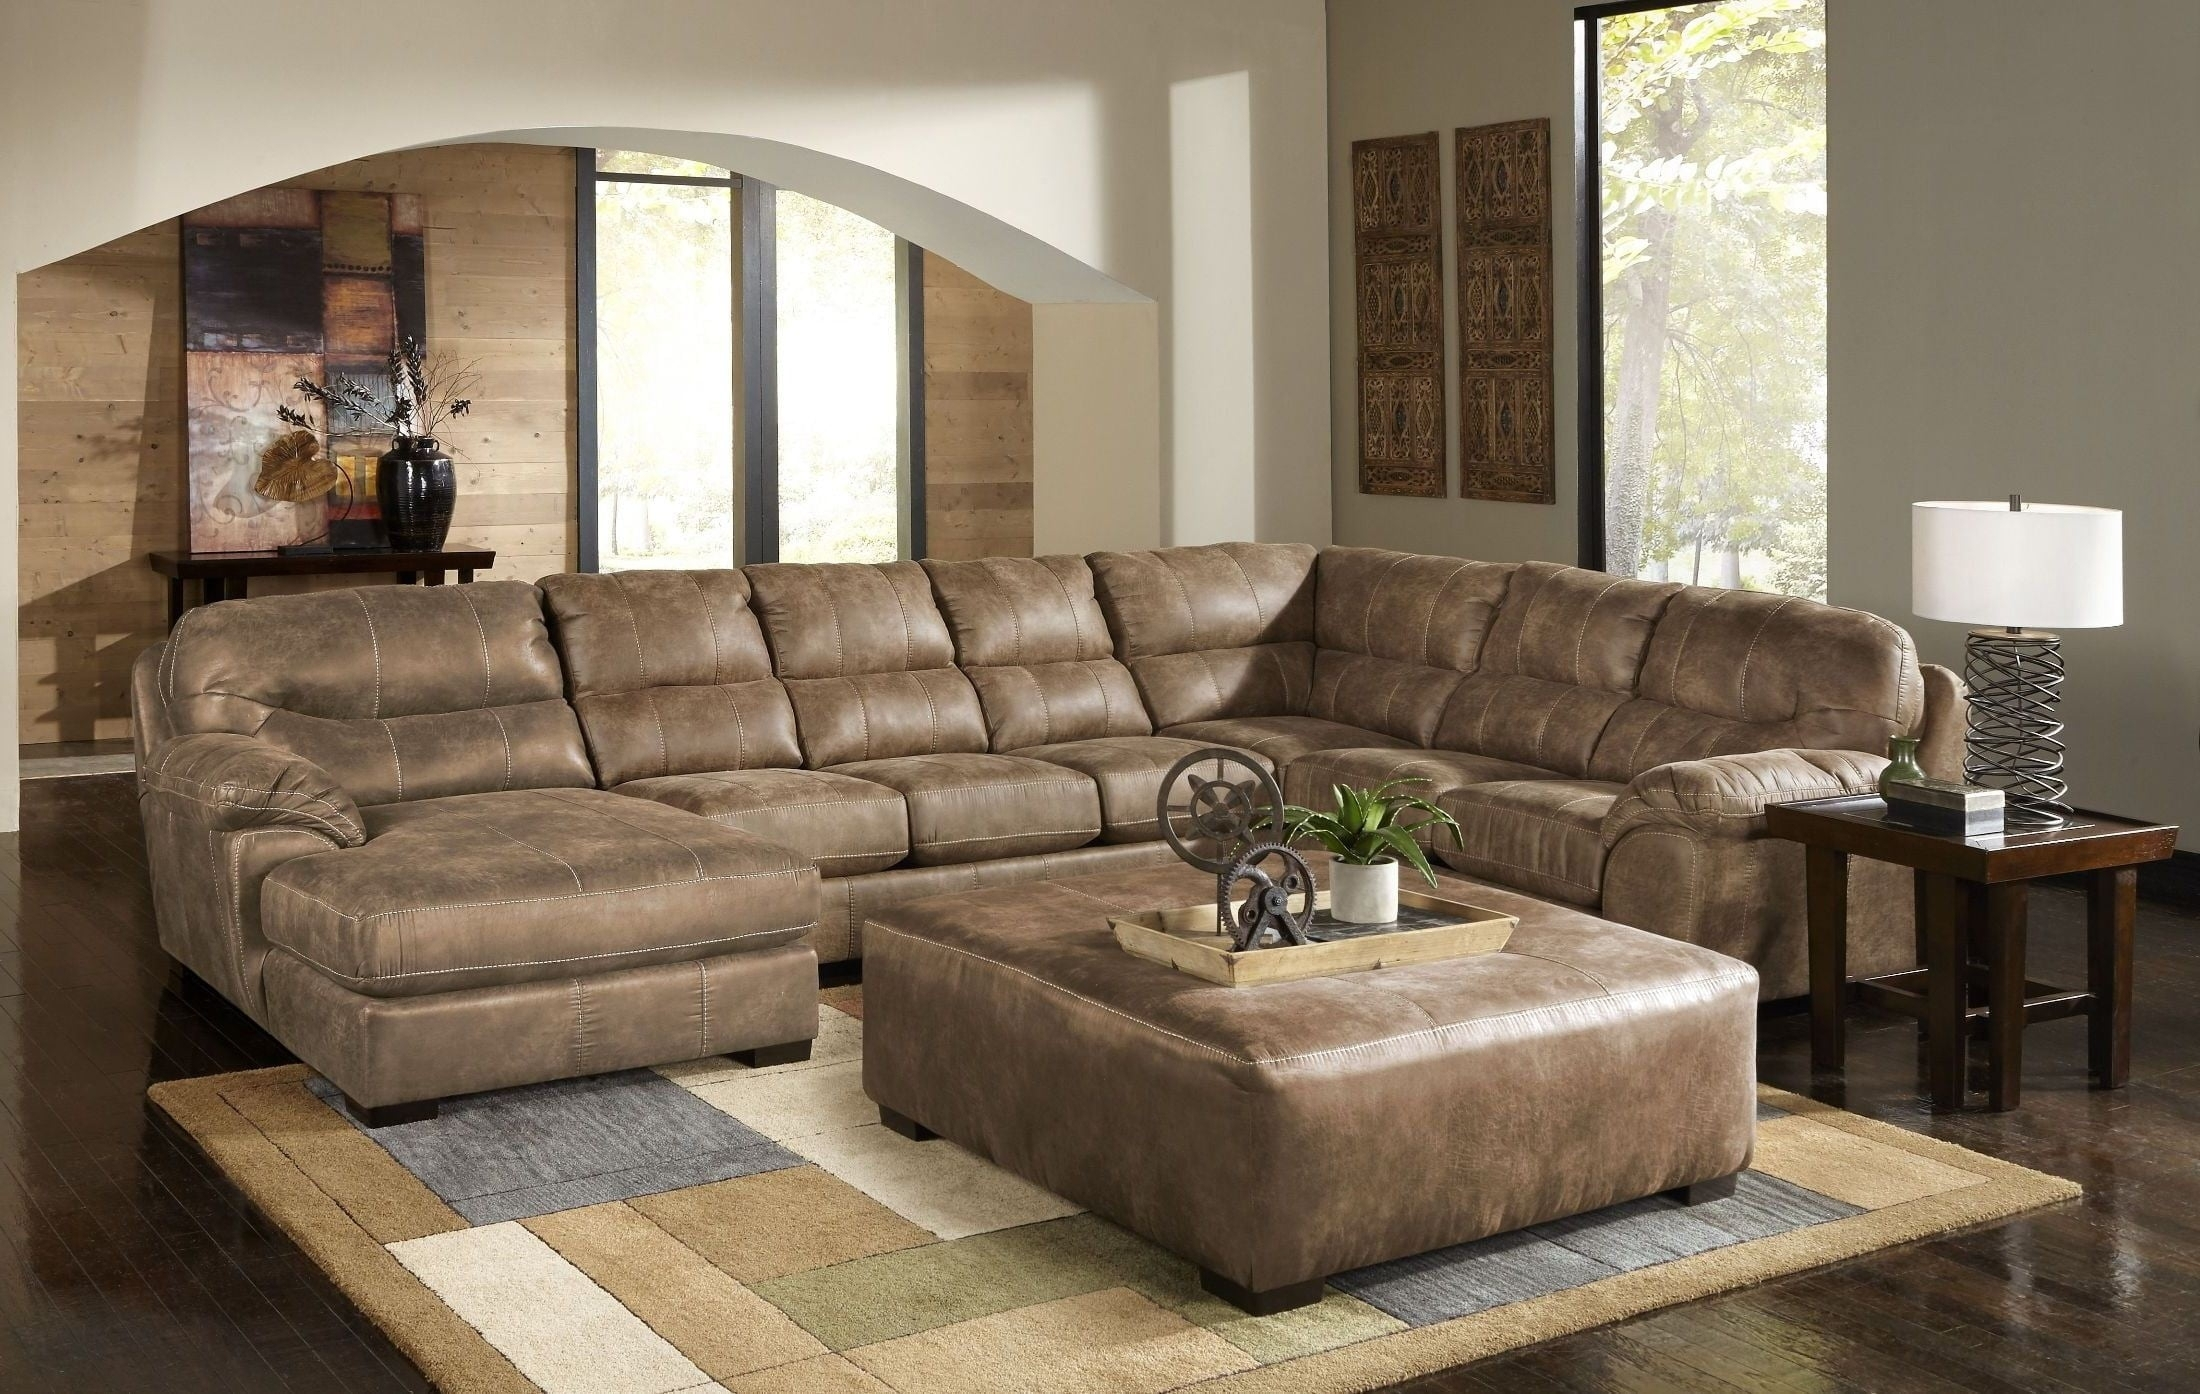 Grant Silt Laf Chaise Sectional, 4453 75 122749302749, Jackson With Avery 2 Piece Sectionals With Laf Armless Chaise (Image 16 of 25)